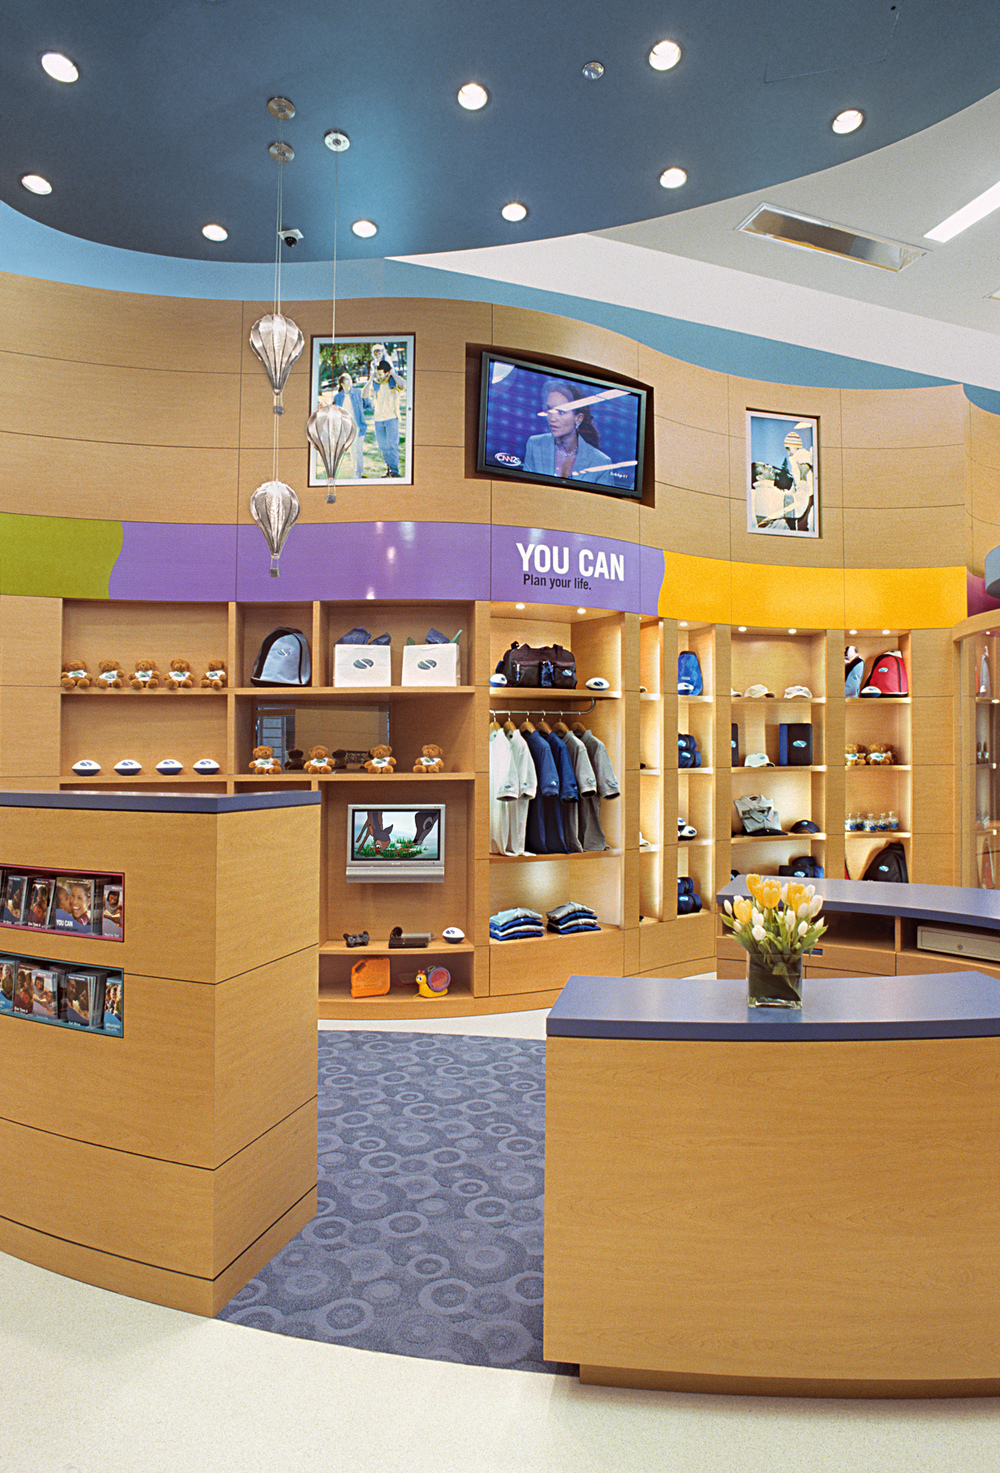 SBLI USA Financial Services - Retail Store. Tobin Parnes Design. Retail Design. Sales Area.